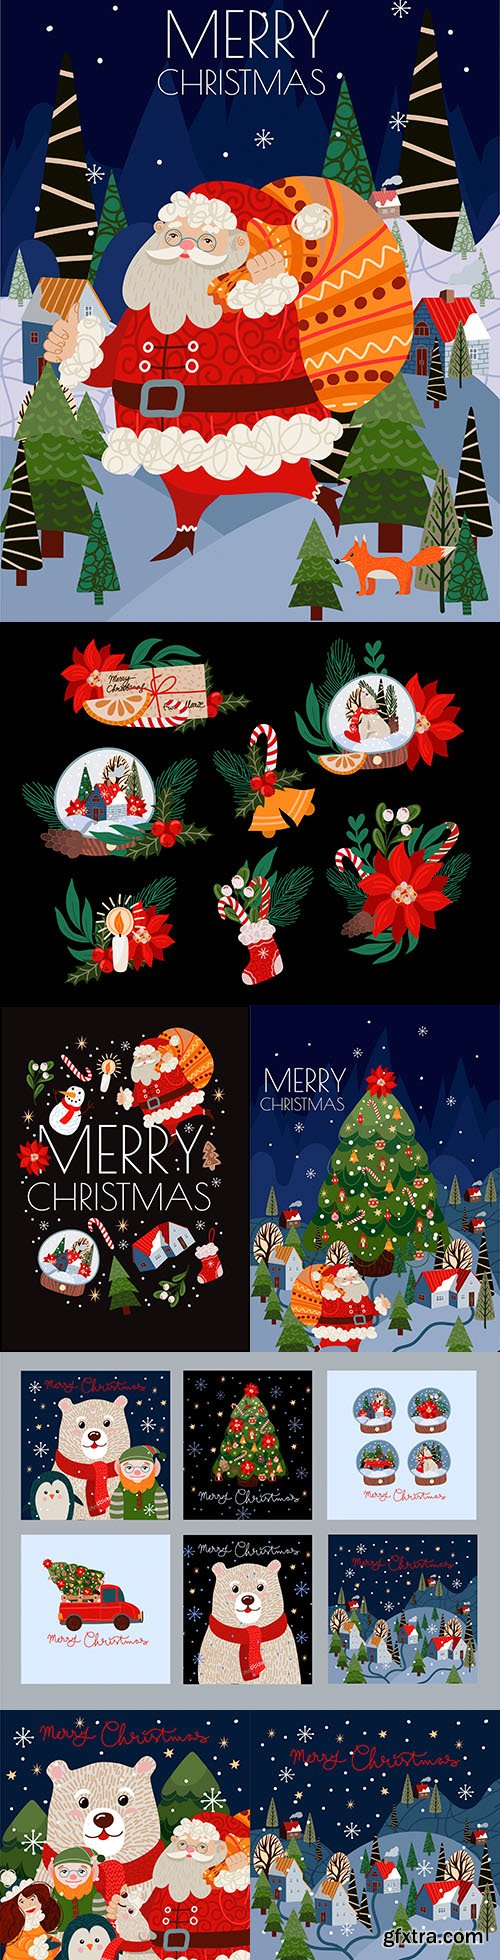 Merry Christmas themed painted illustrations